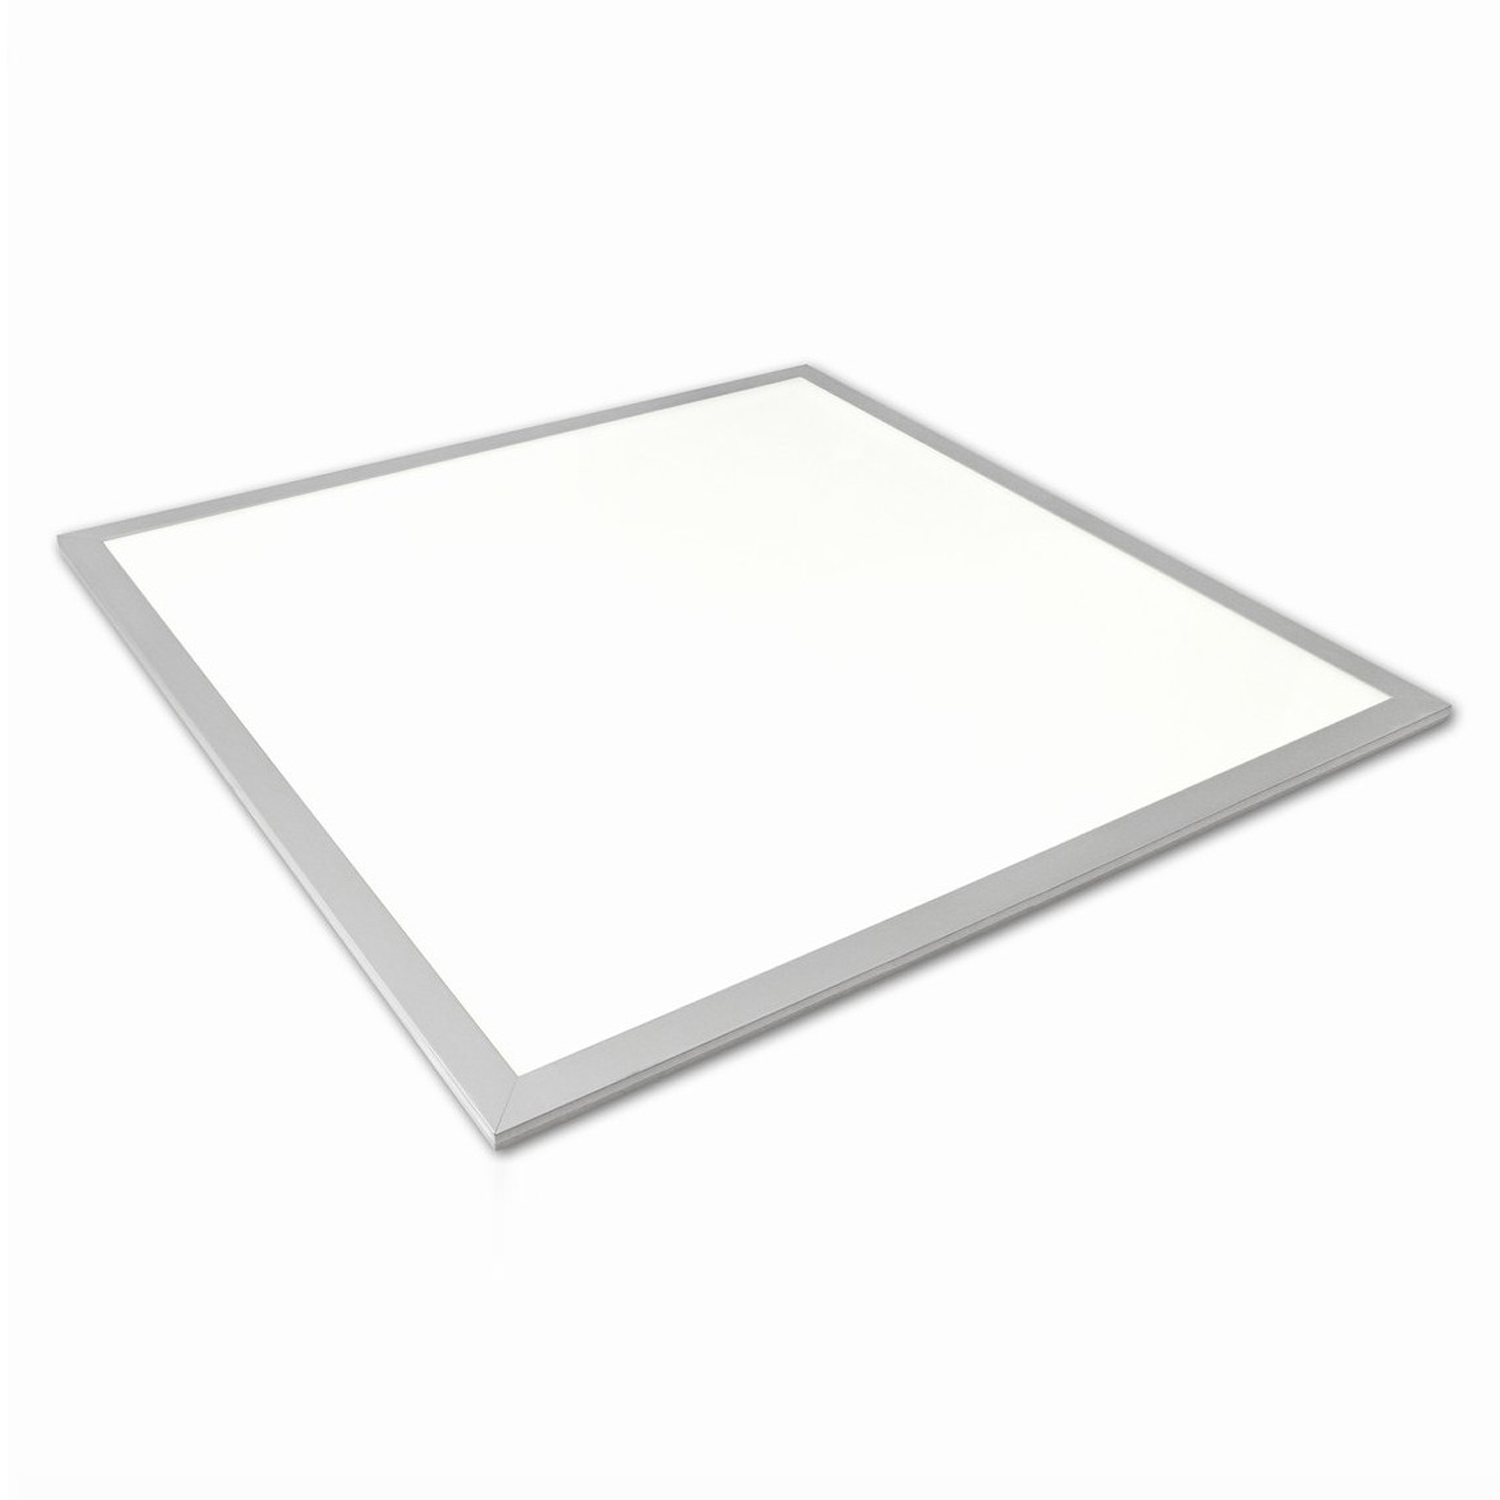 Led panel light fixtures light fixtures 50w led panel light fixture 2ft x socal lighting arubaitofo Image collections